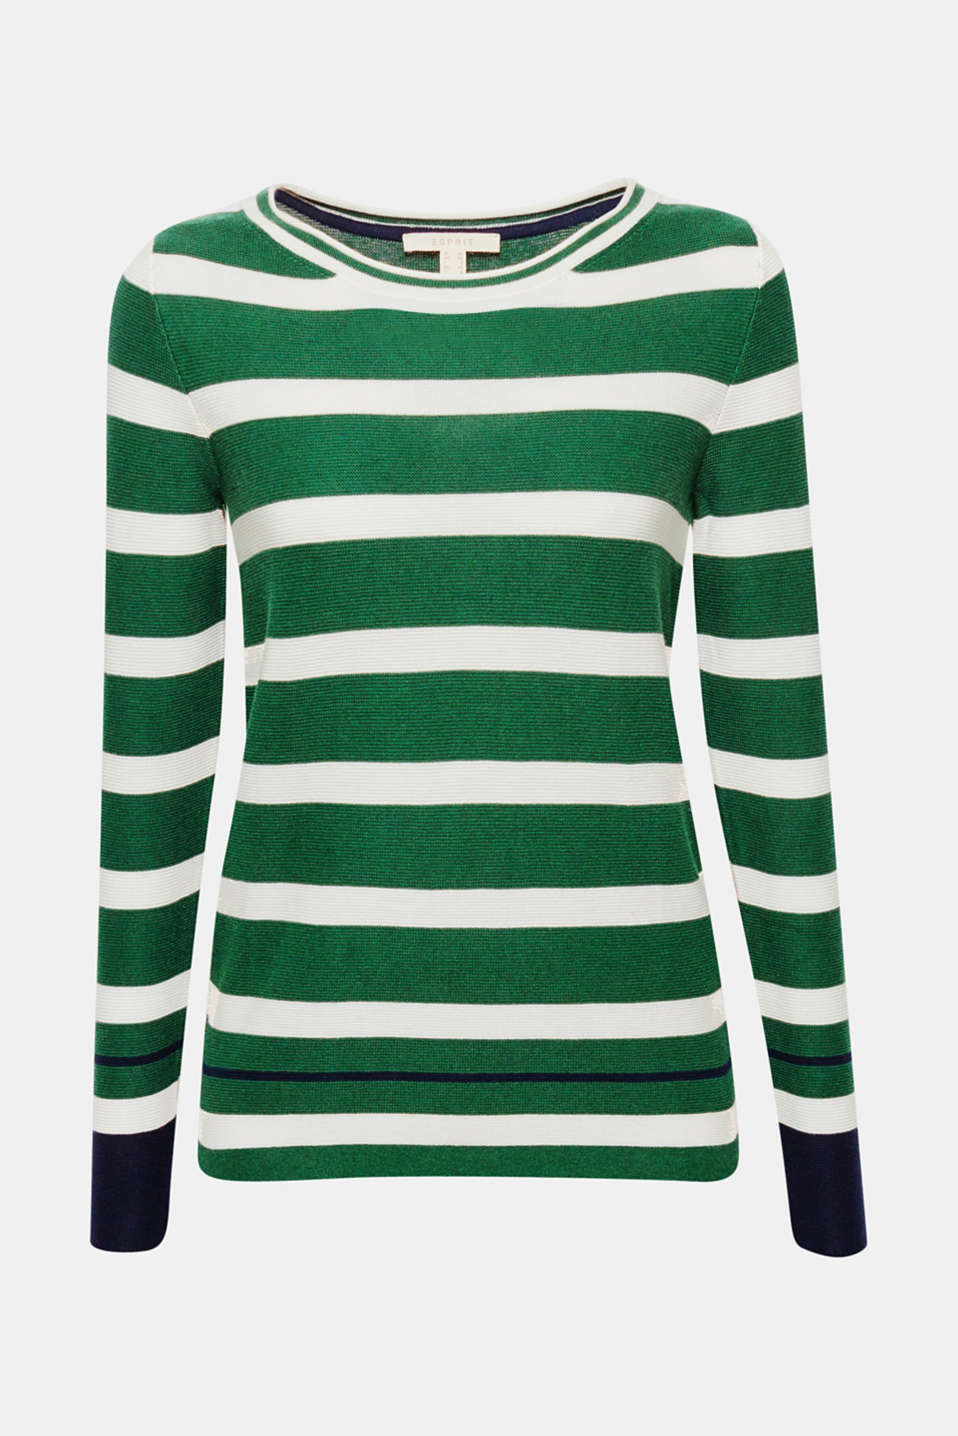 Contrasting colour accents give this finely textured, cotton jumper a new, nautical look!